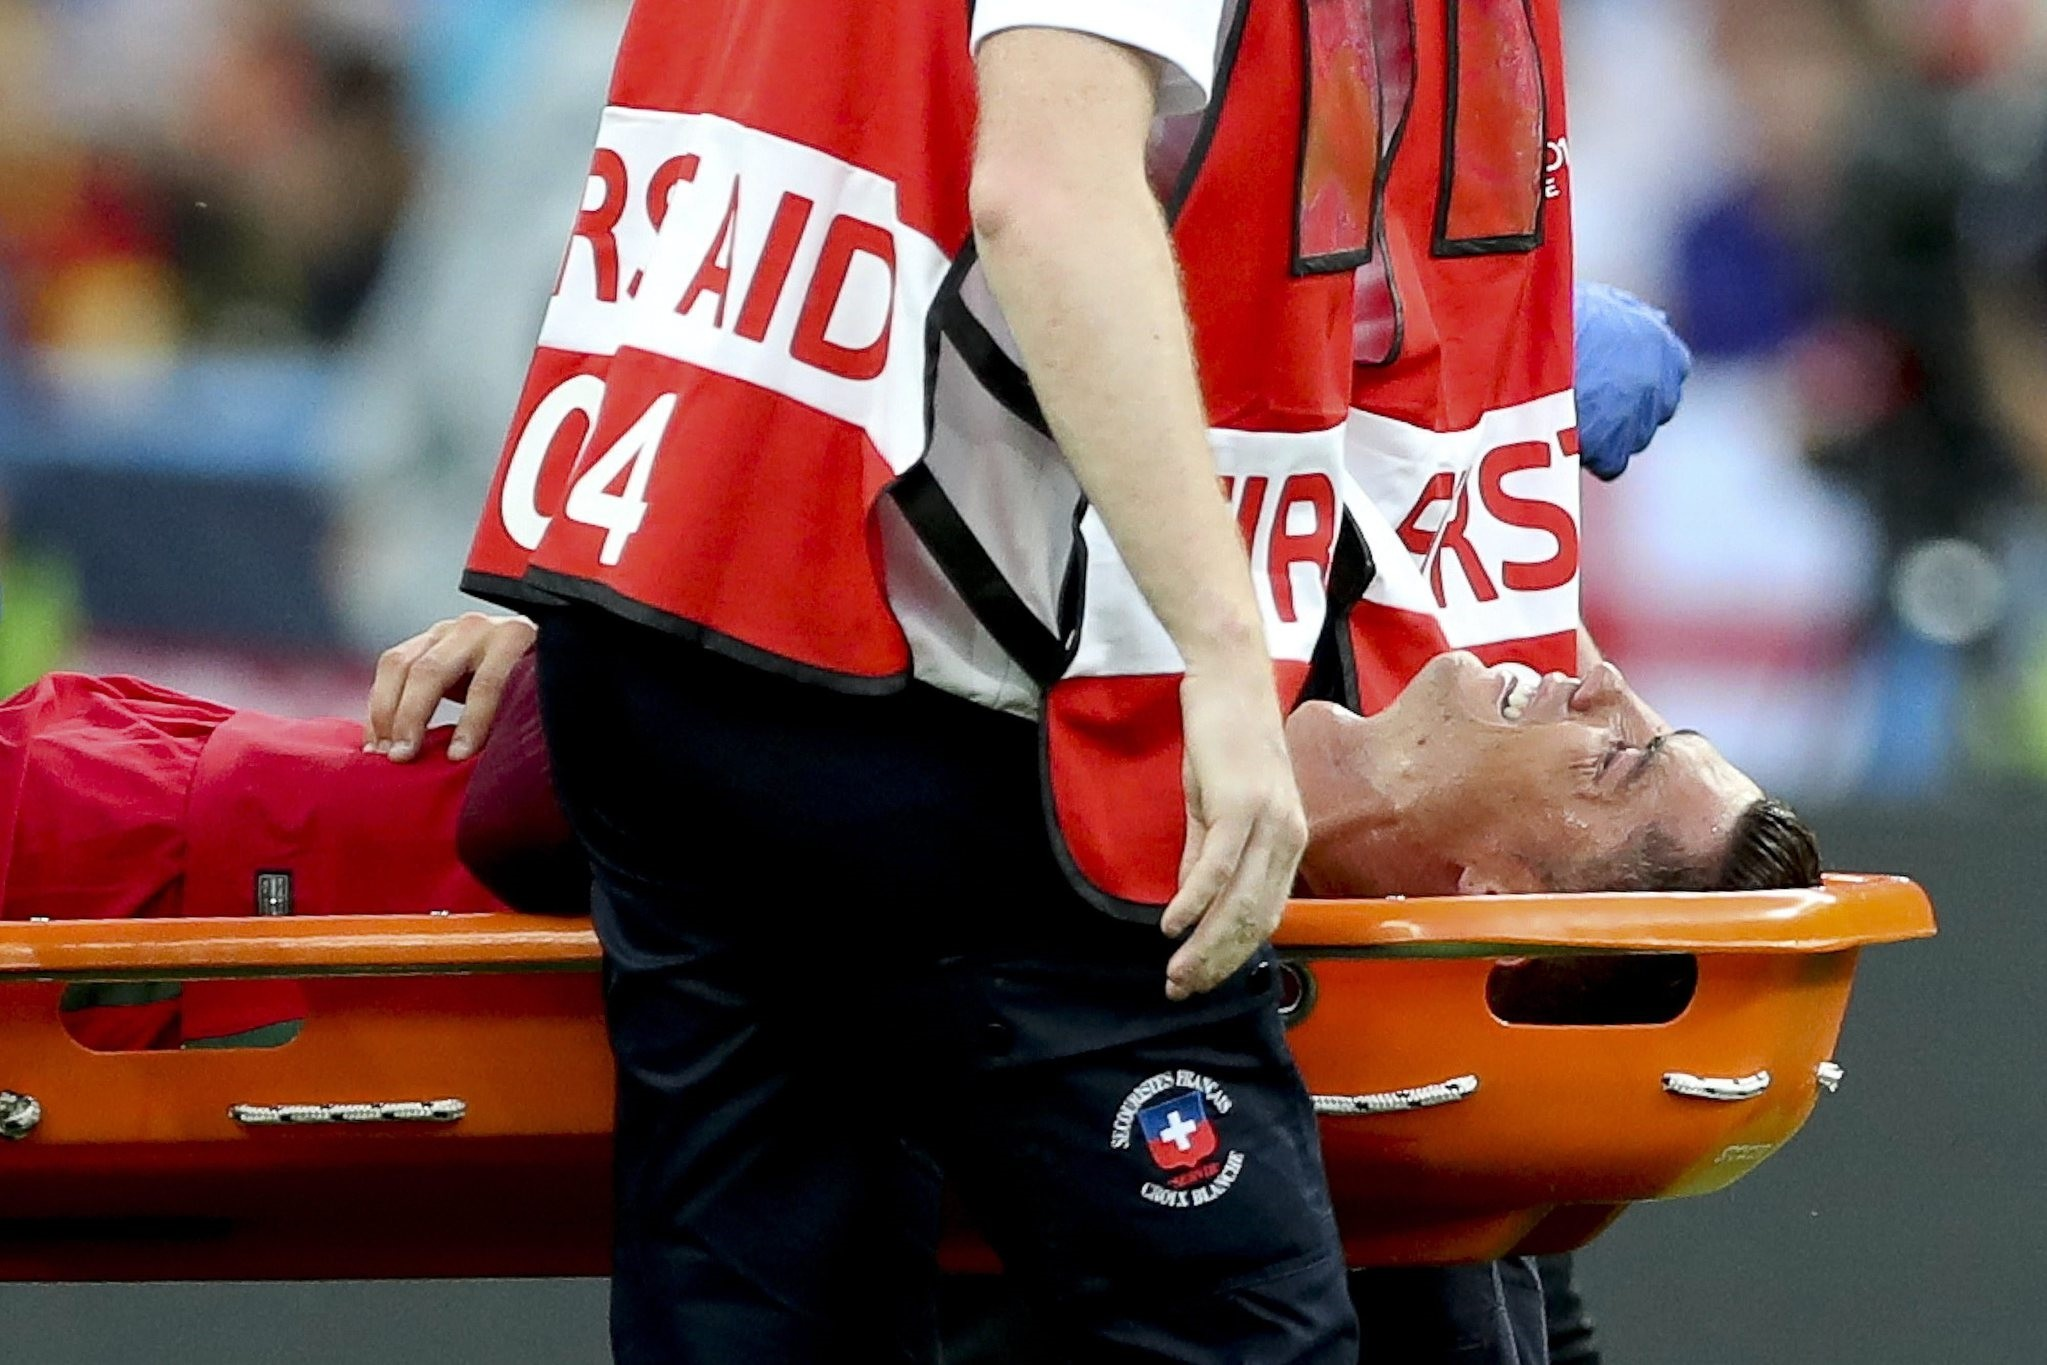 Cristiano Ronaldo of Portugal is stretchered off the pitch after being injured during the UEFA EURO 2016 Final match between Portugal and France at Stade de France in Saint-Denis, France, 10 July 2016. (EPA Photo)